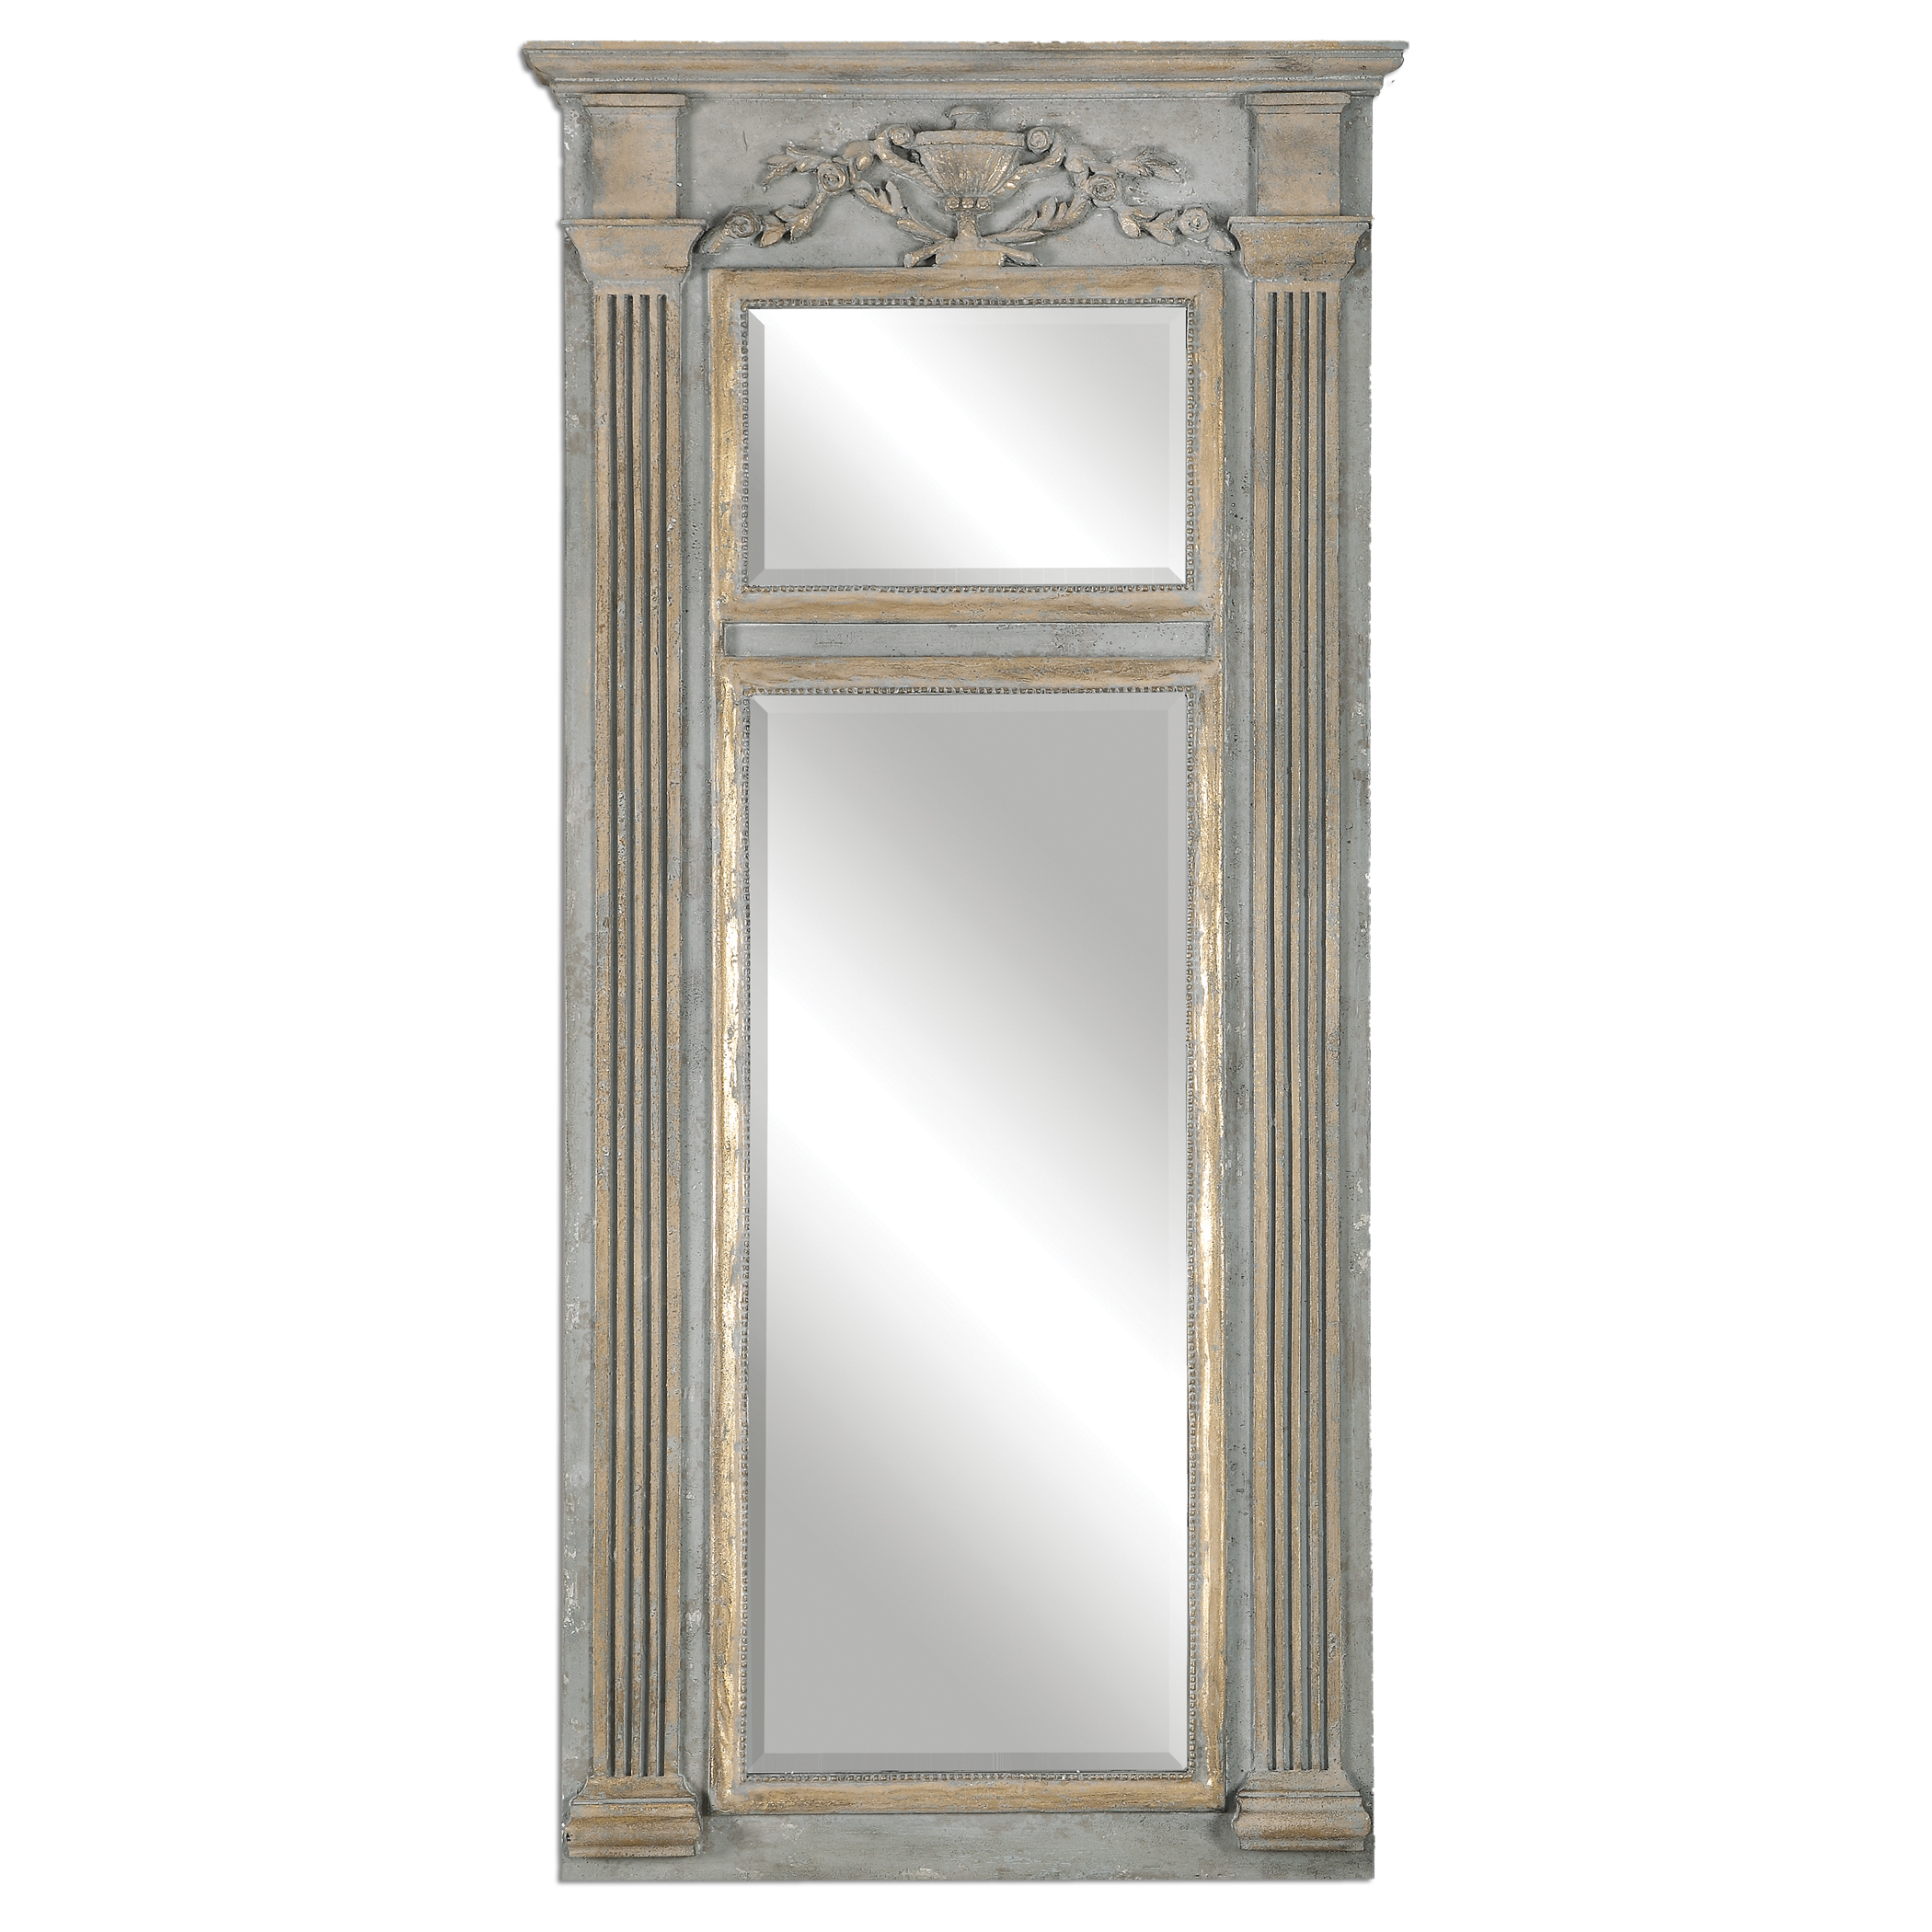 Uttermost Mirrors Sella Stately Weathered Gray Mirror - Item Number: 12933